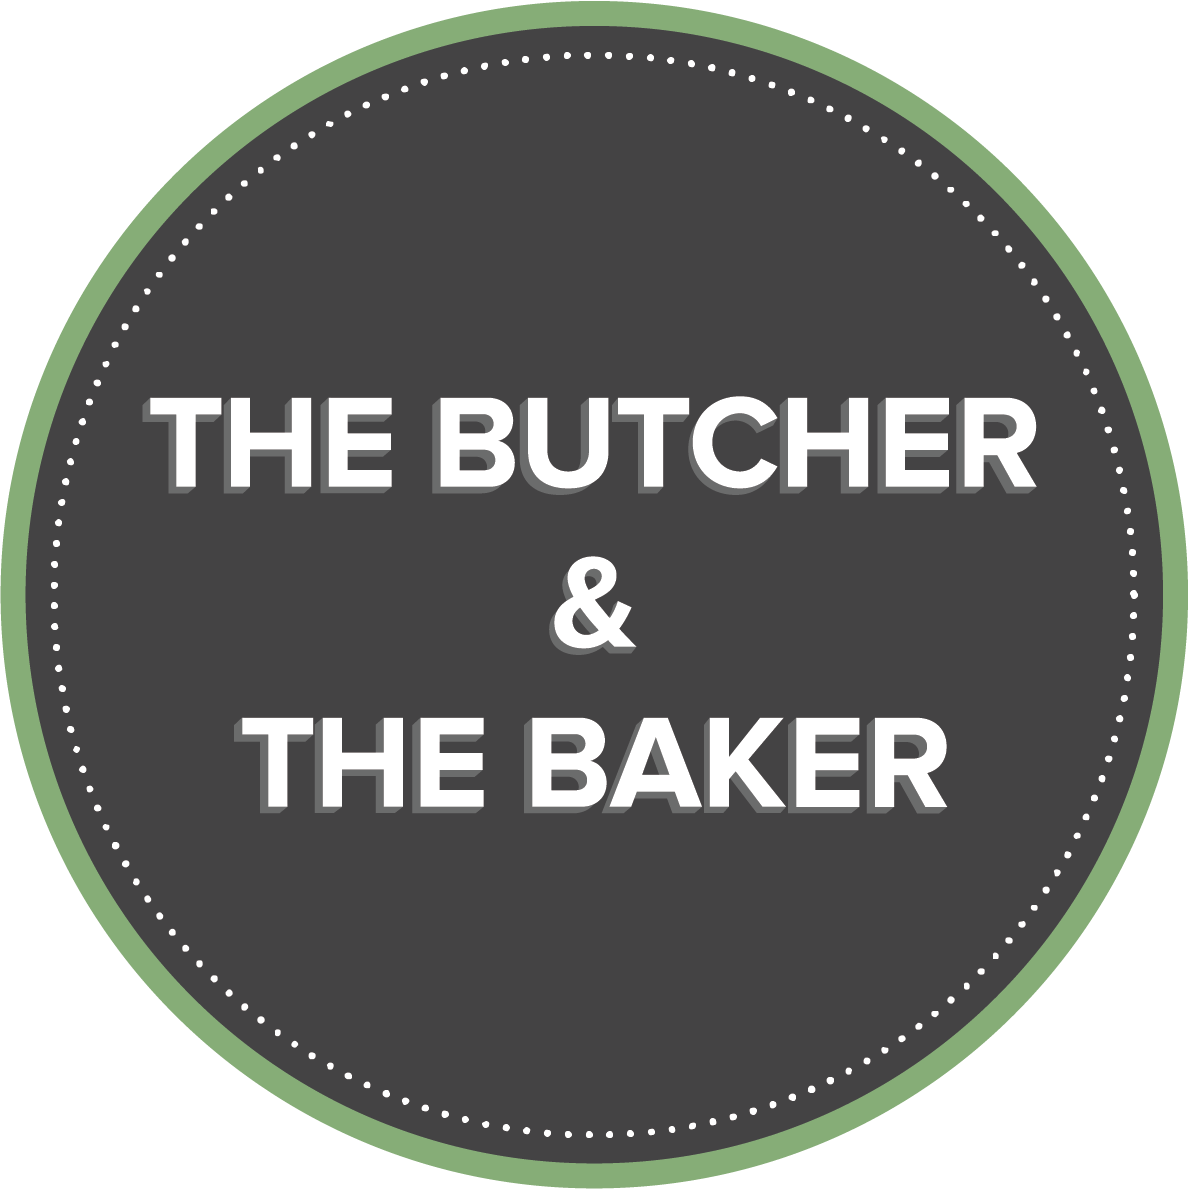 The Butcher & The Baker